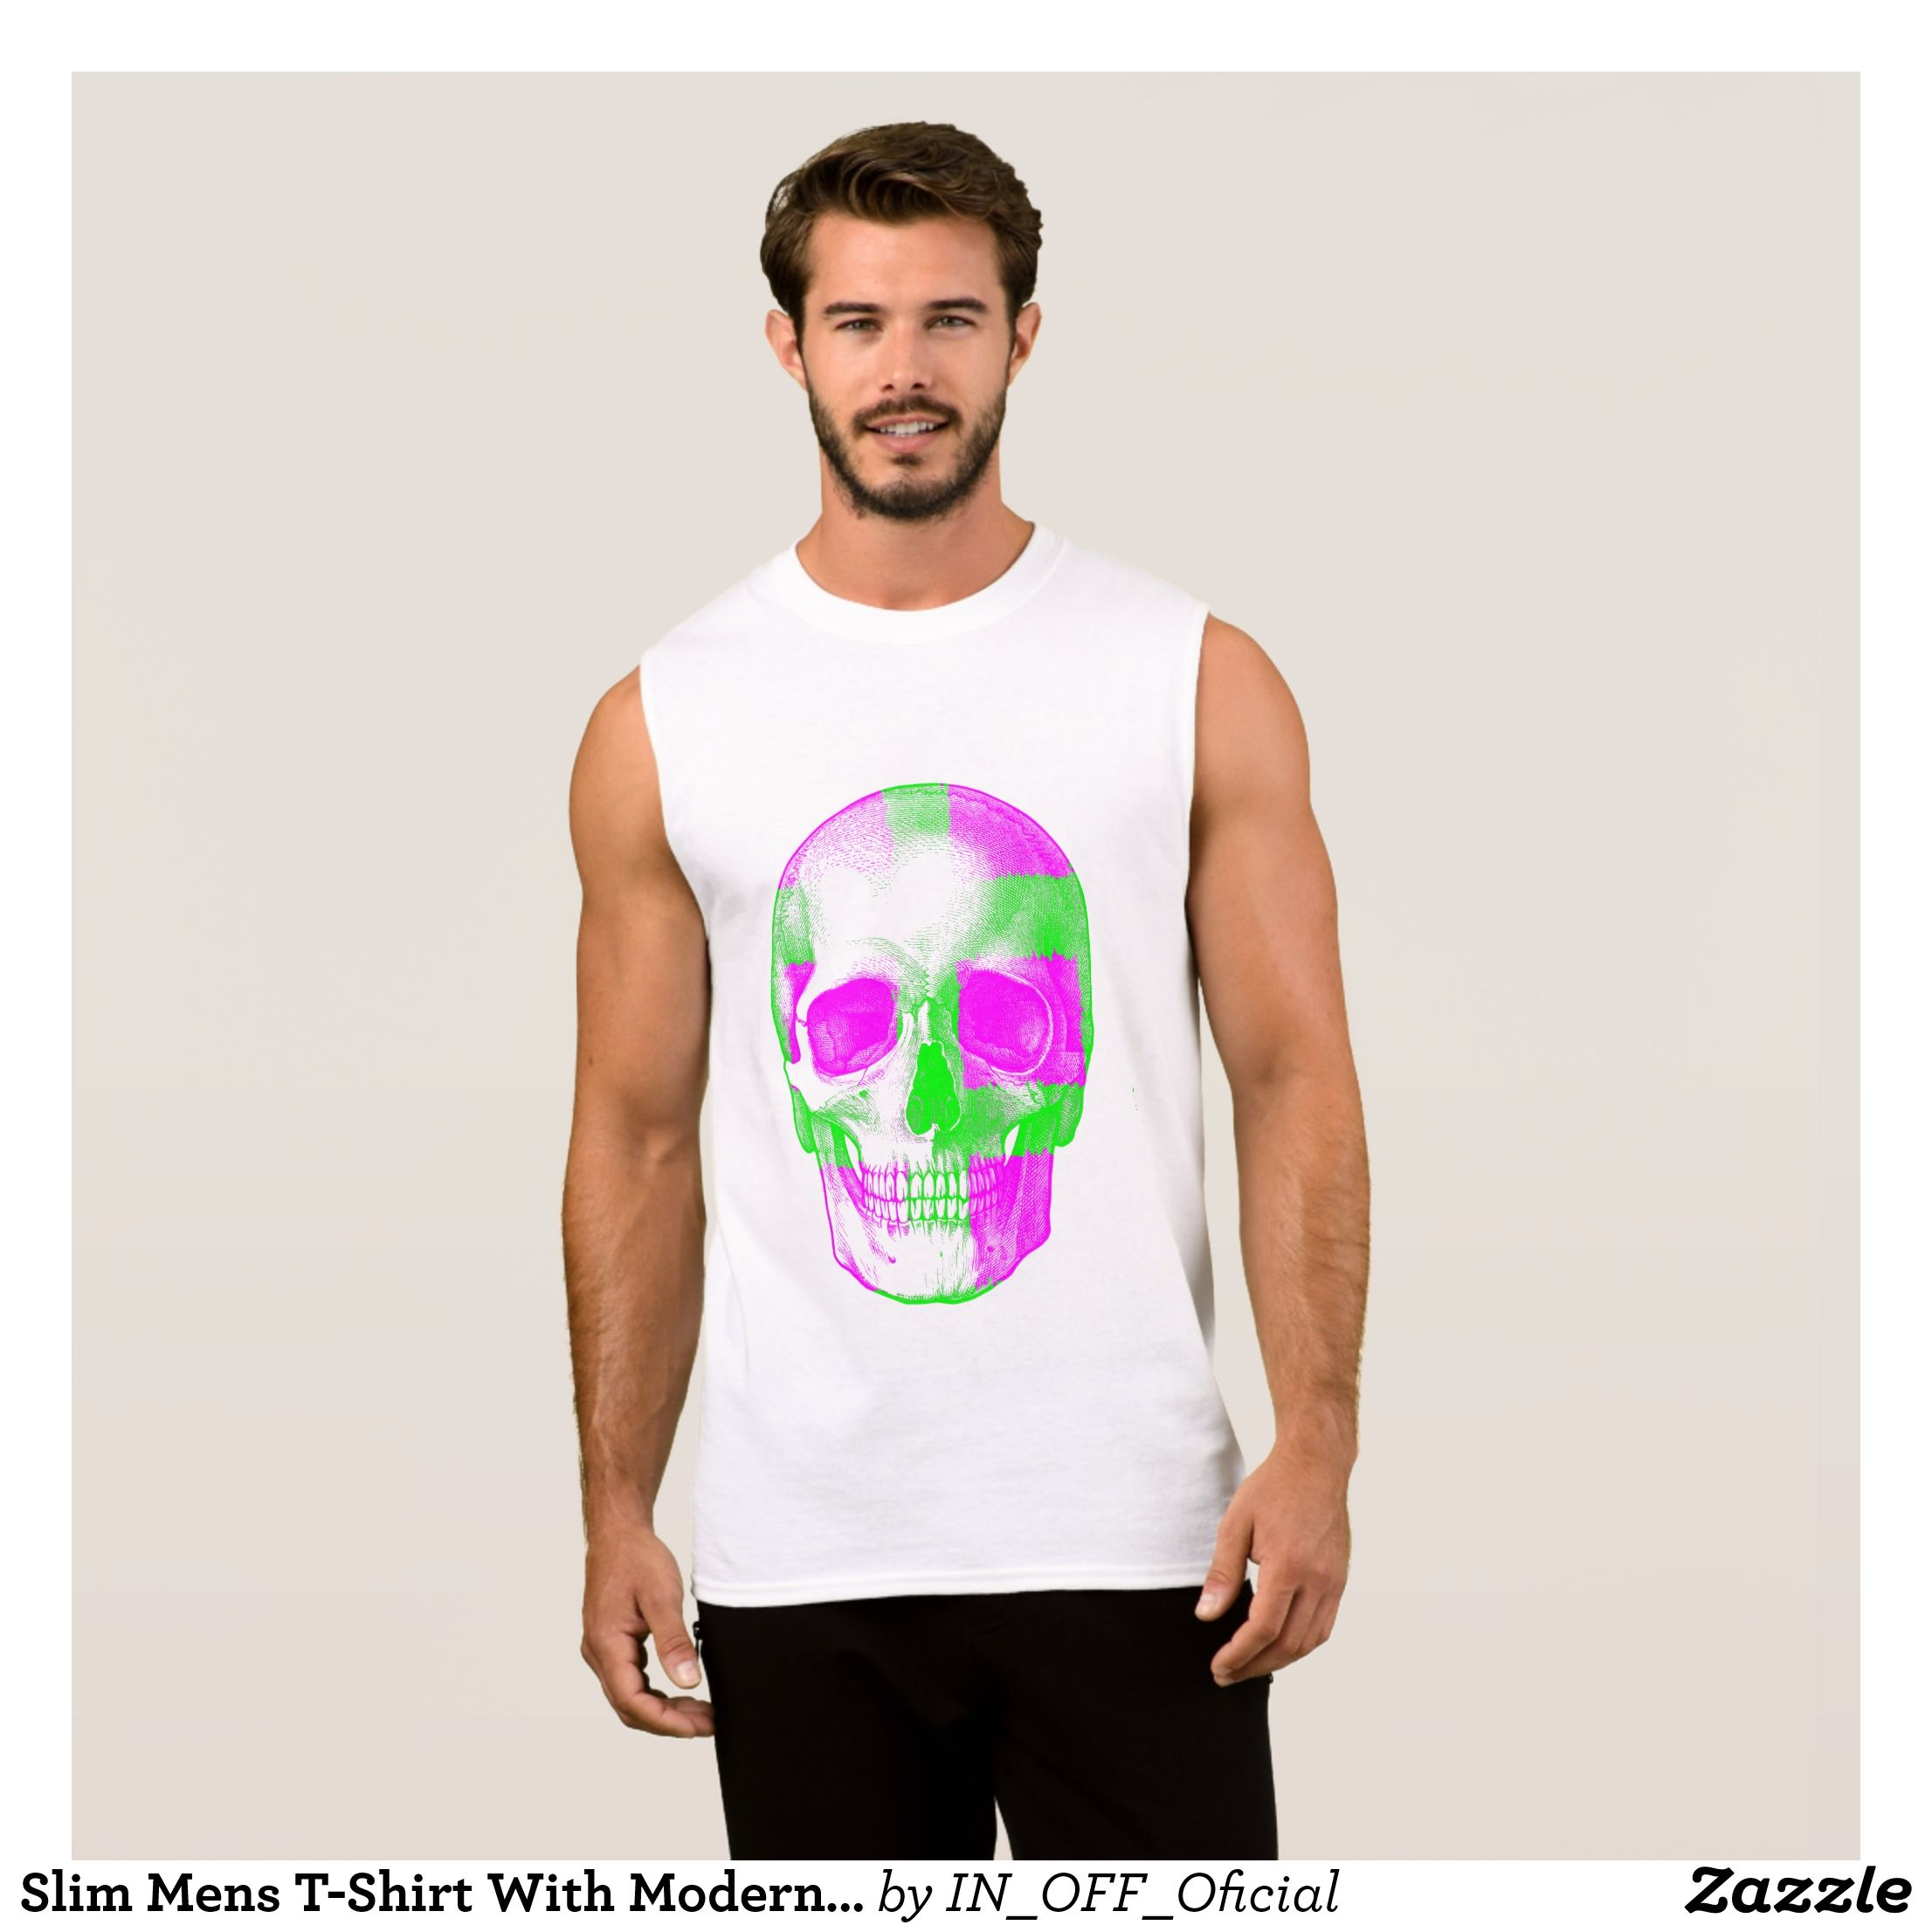 44e2f230e62951 Slim Mens T-Shirt With Modern Print SKULL - Comfy Moisture-Wicking Sport Tank  Tops By Talented Fashion   Graphic Designers -  tanktops  gym  exercise ...